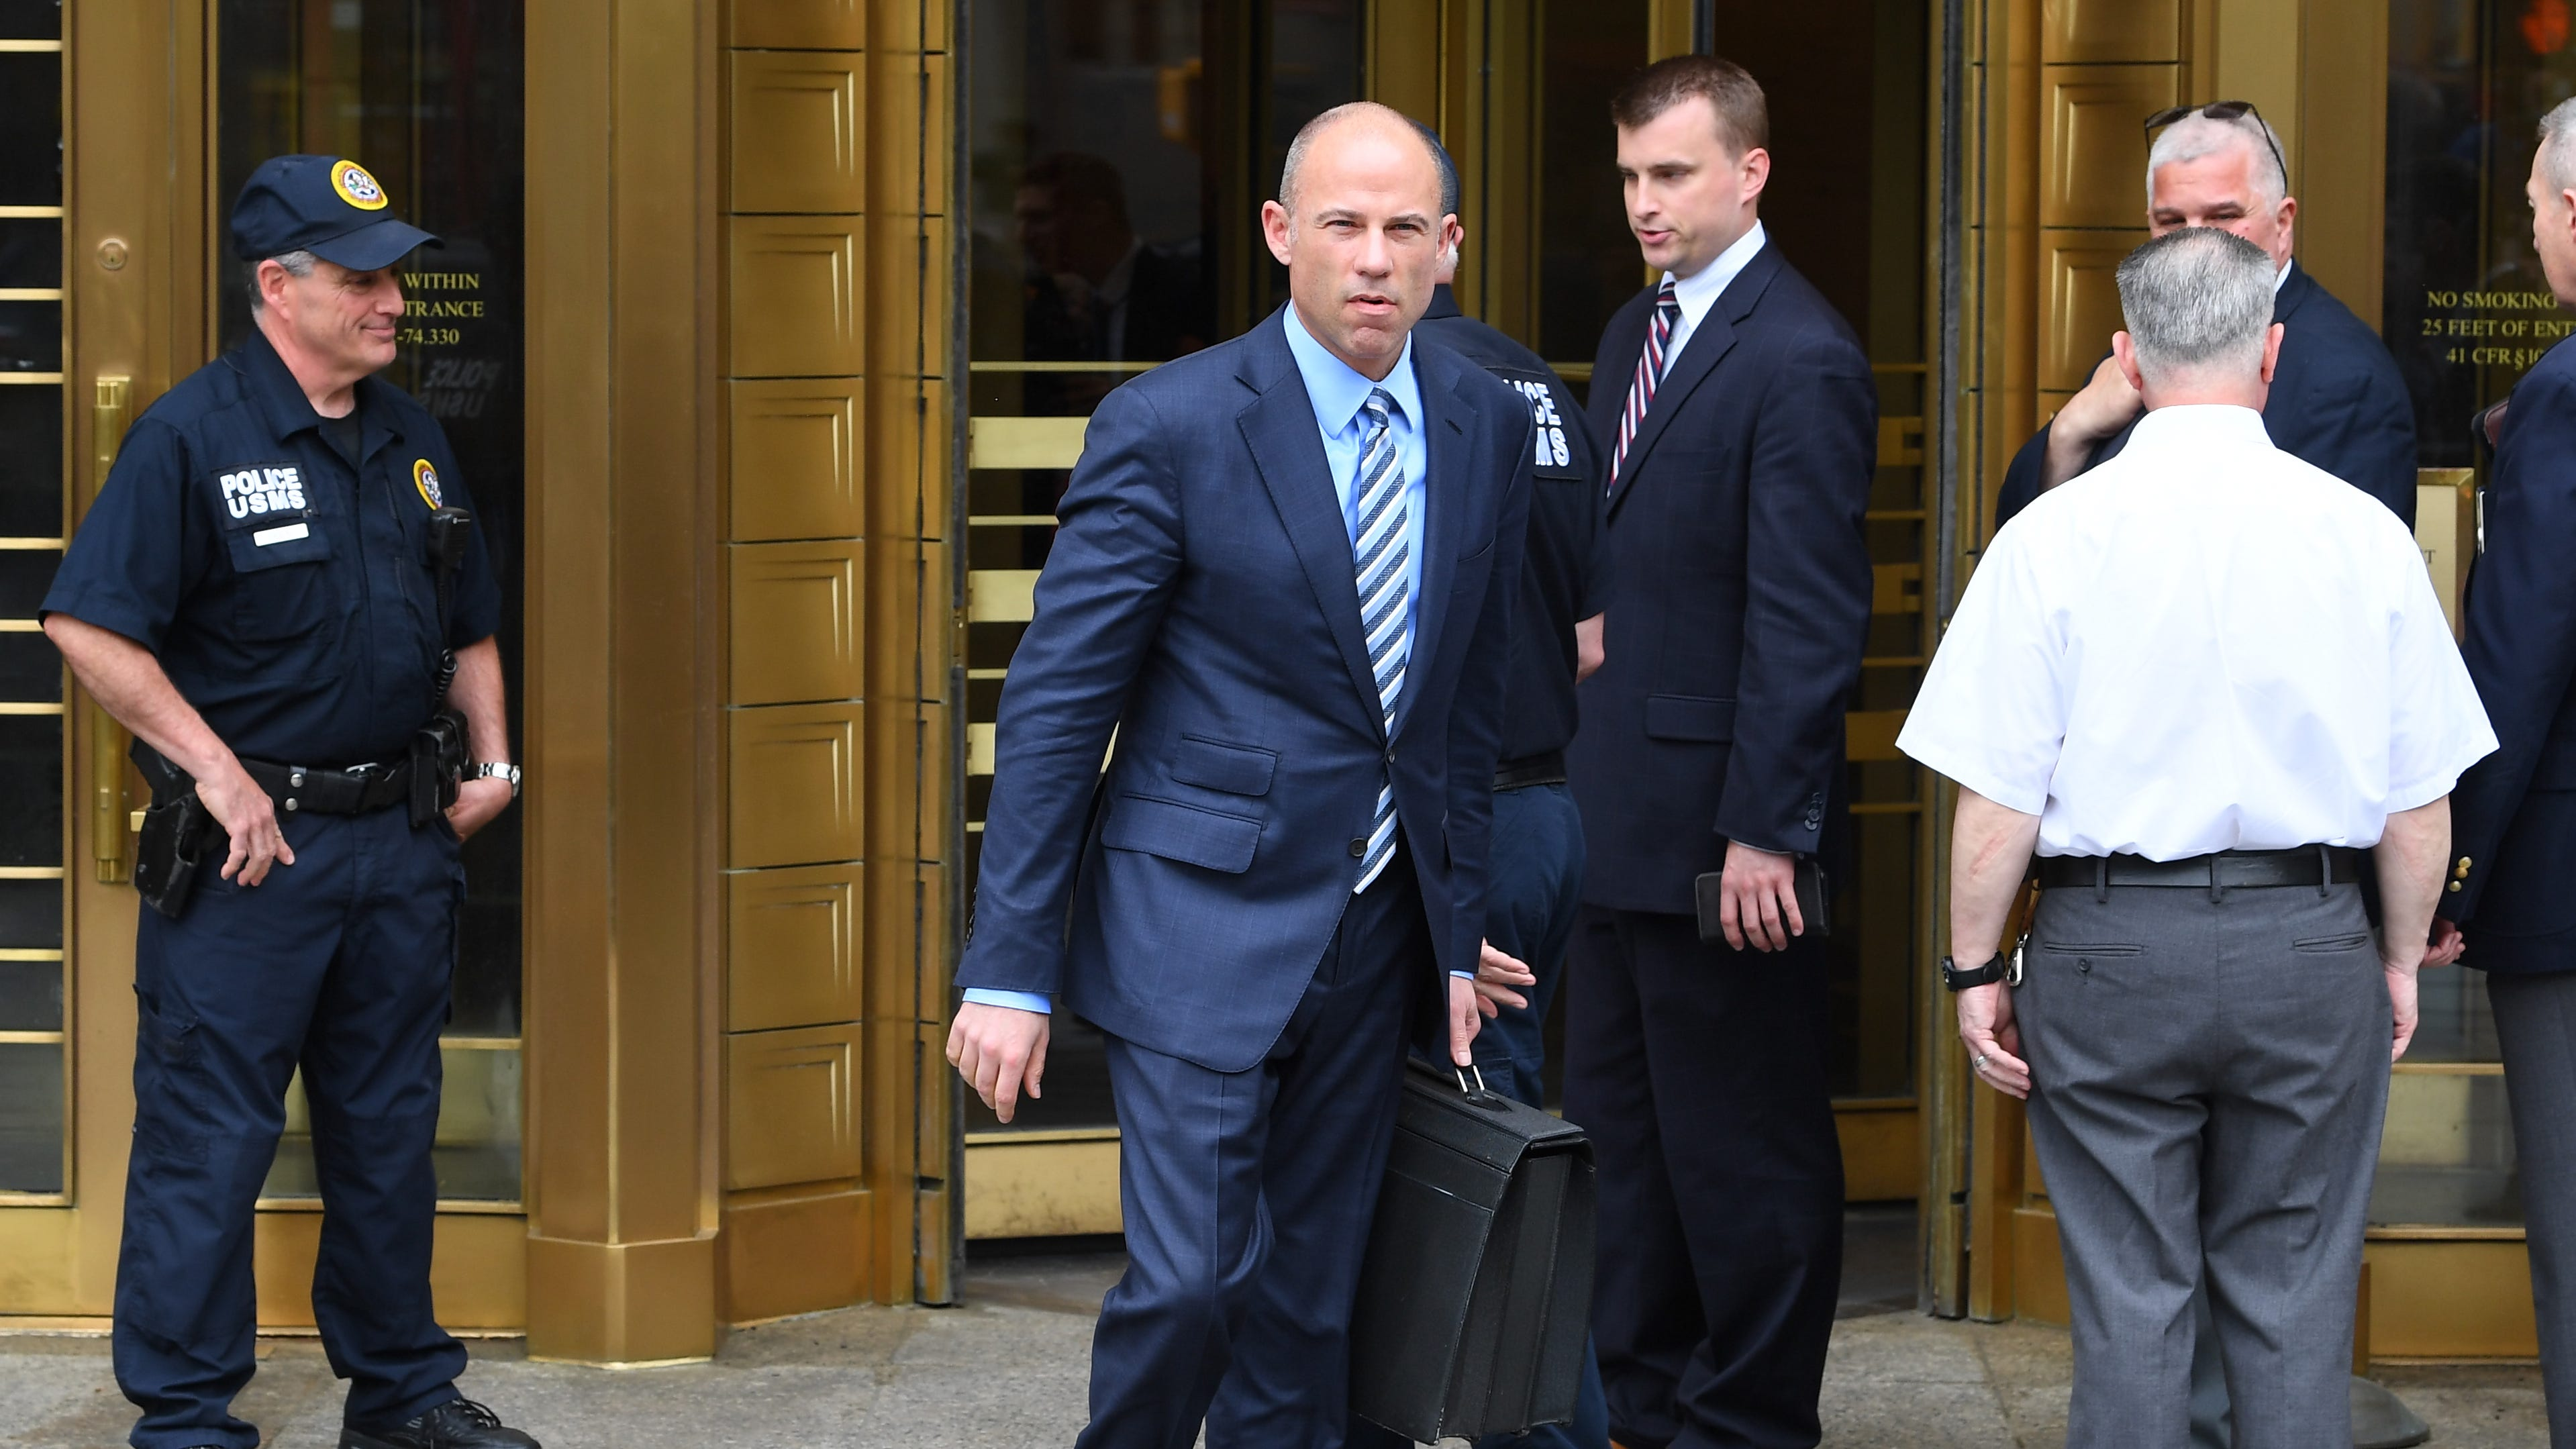 5/30/18 11:44:06 AM -- New York, NY, U.S.A  --  Attorney Michael Avenatti leaves the U.S. Courthouse in New York and addresses the media after a scheduled hearing May 30, 2018.